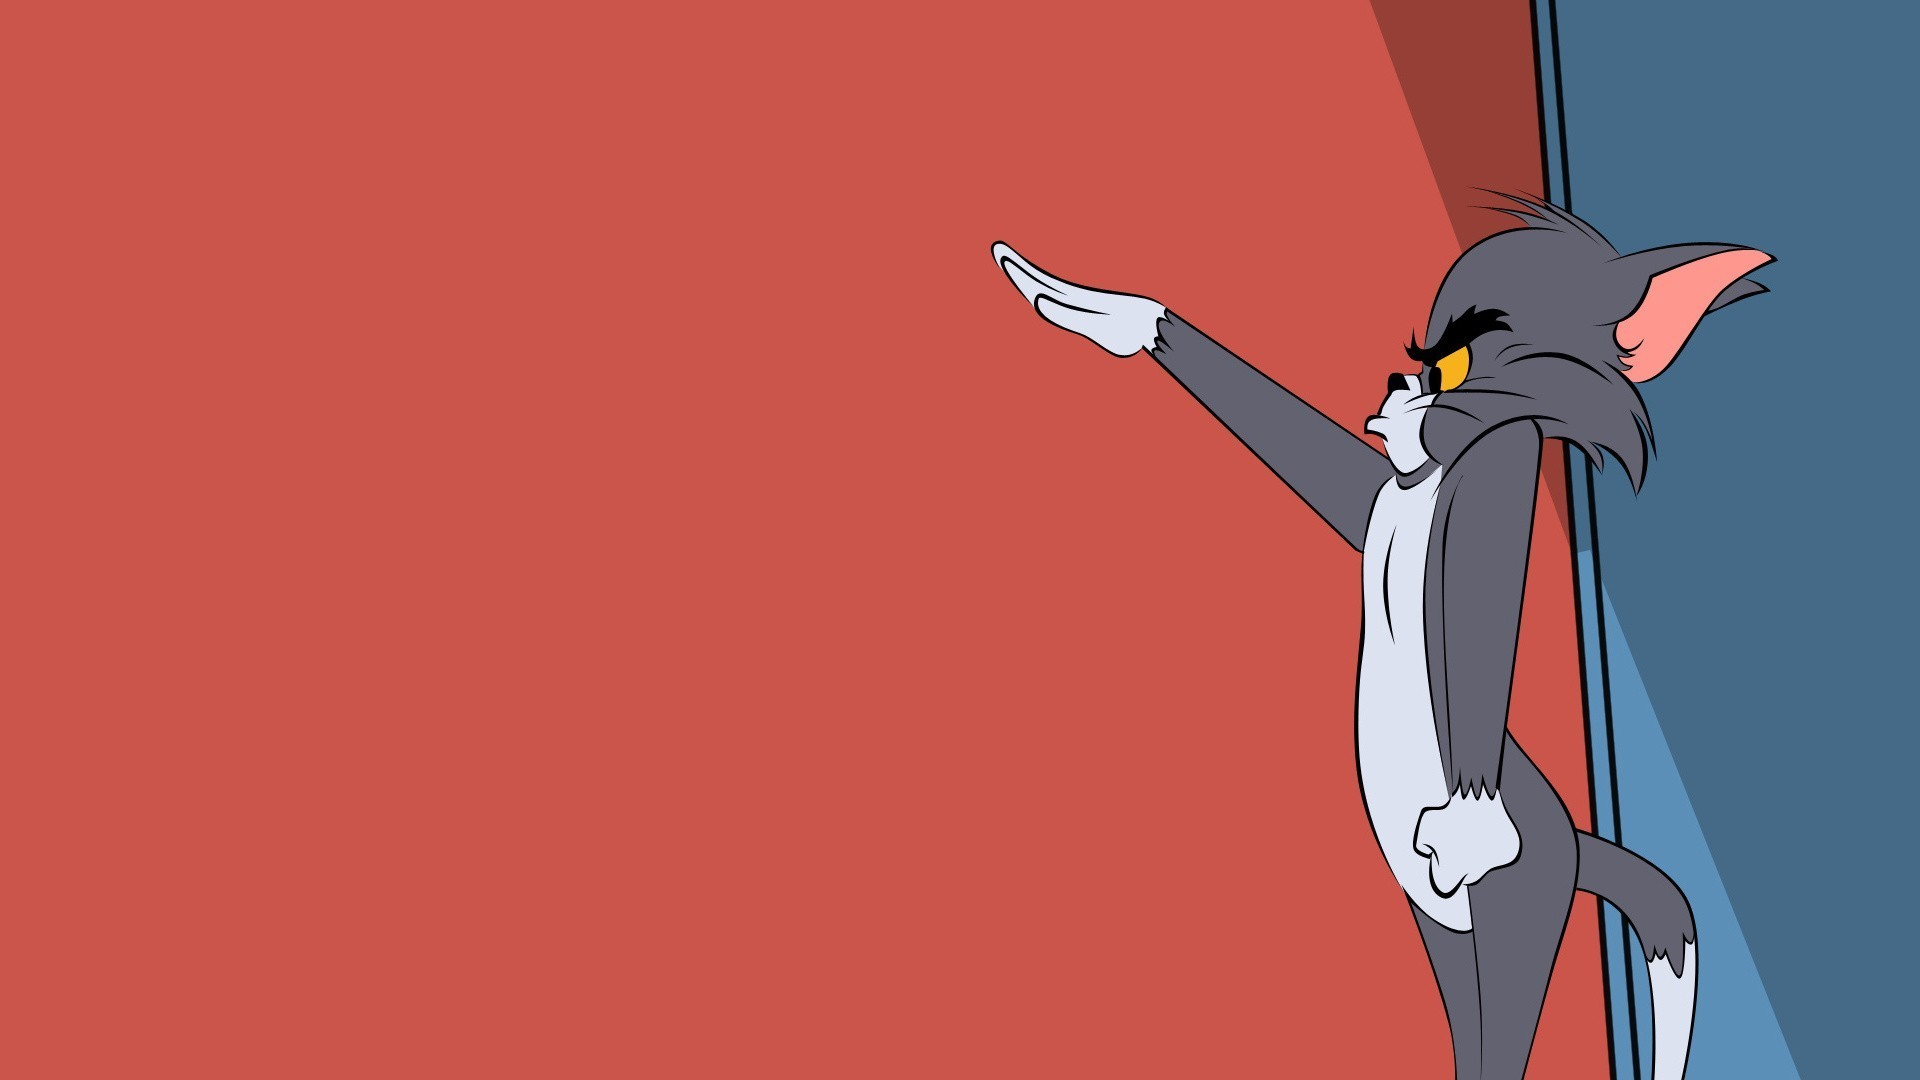 Tom from Tom and Jerry